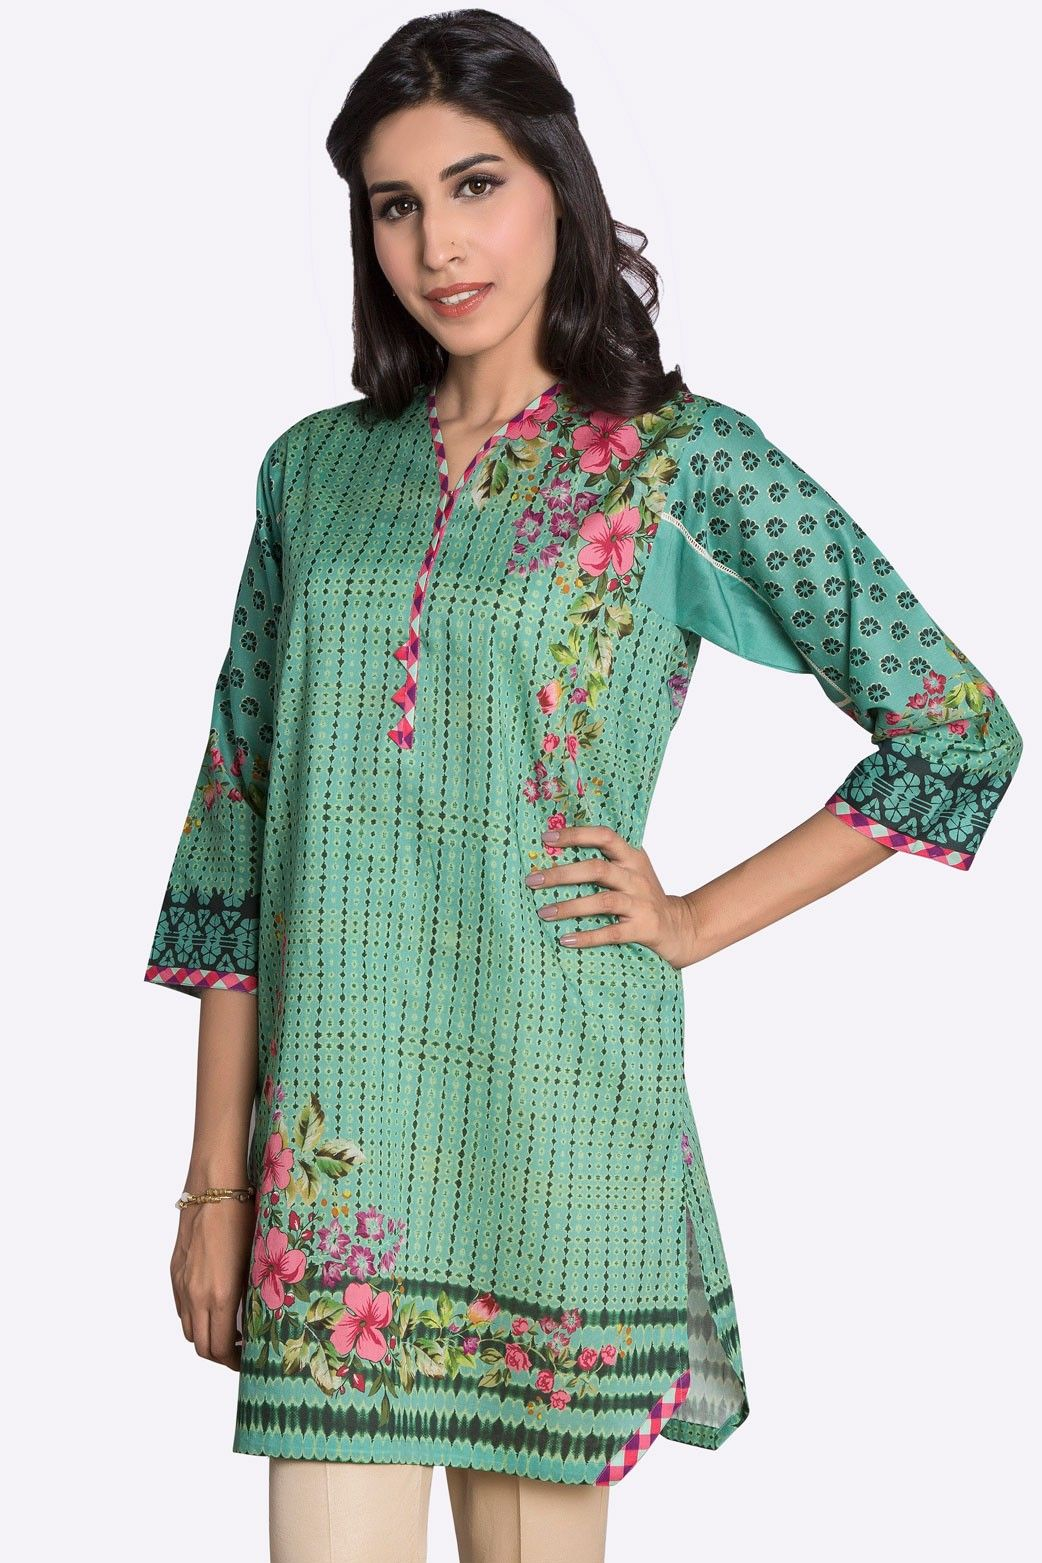 Medium Sea Green Color Pret Ready to Wear Eid Collection 2017 Pakistani Kurti is available online for sale by Zeen Cambridge   #Alkaram #Zeen #Pret #Pretwear #Readytowear #Style #love #Eid #2017 #fashion #women #3piece #pakistani #Pakistan #bridal #prom #dinner #date #wear #dress #brand #designerwear #designer